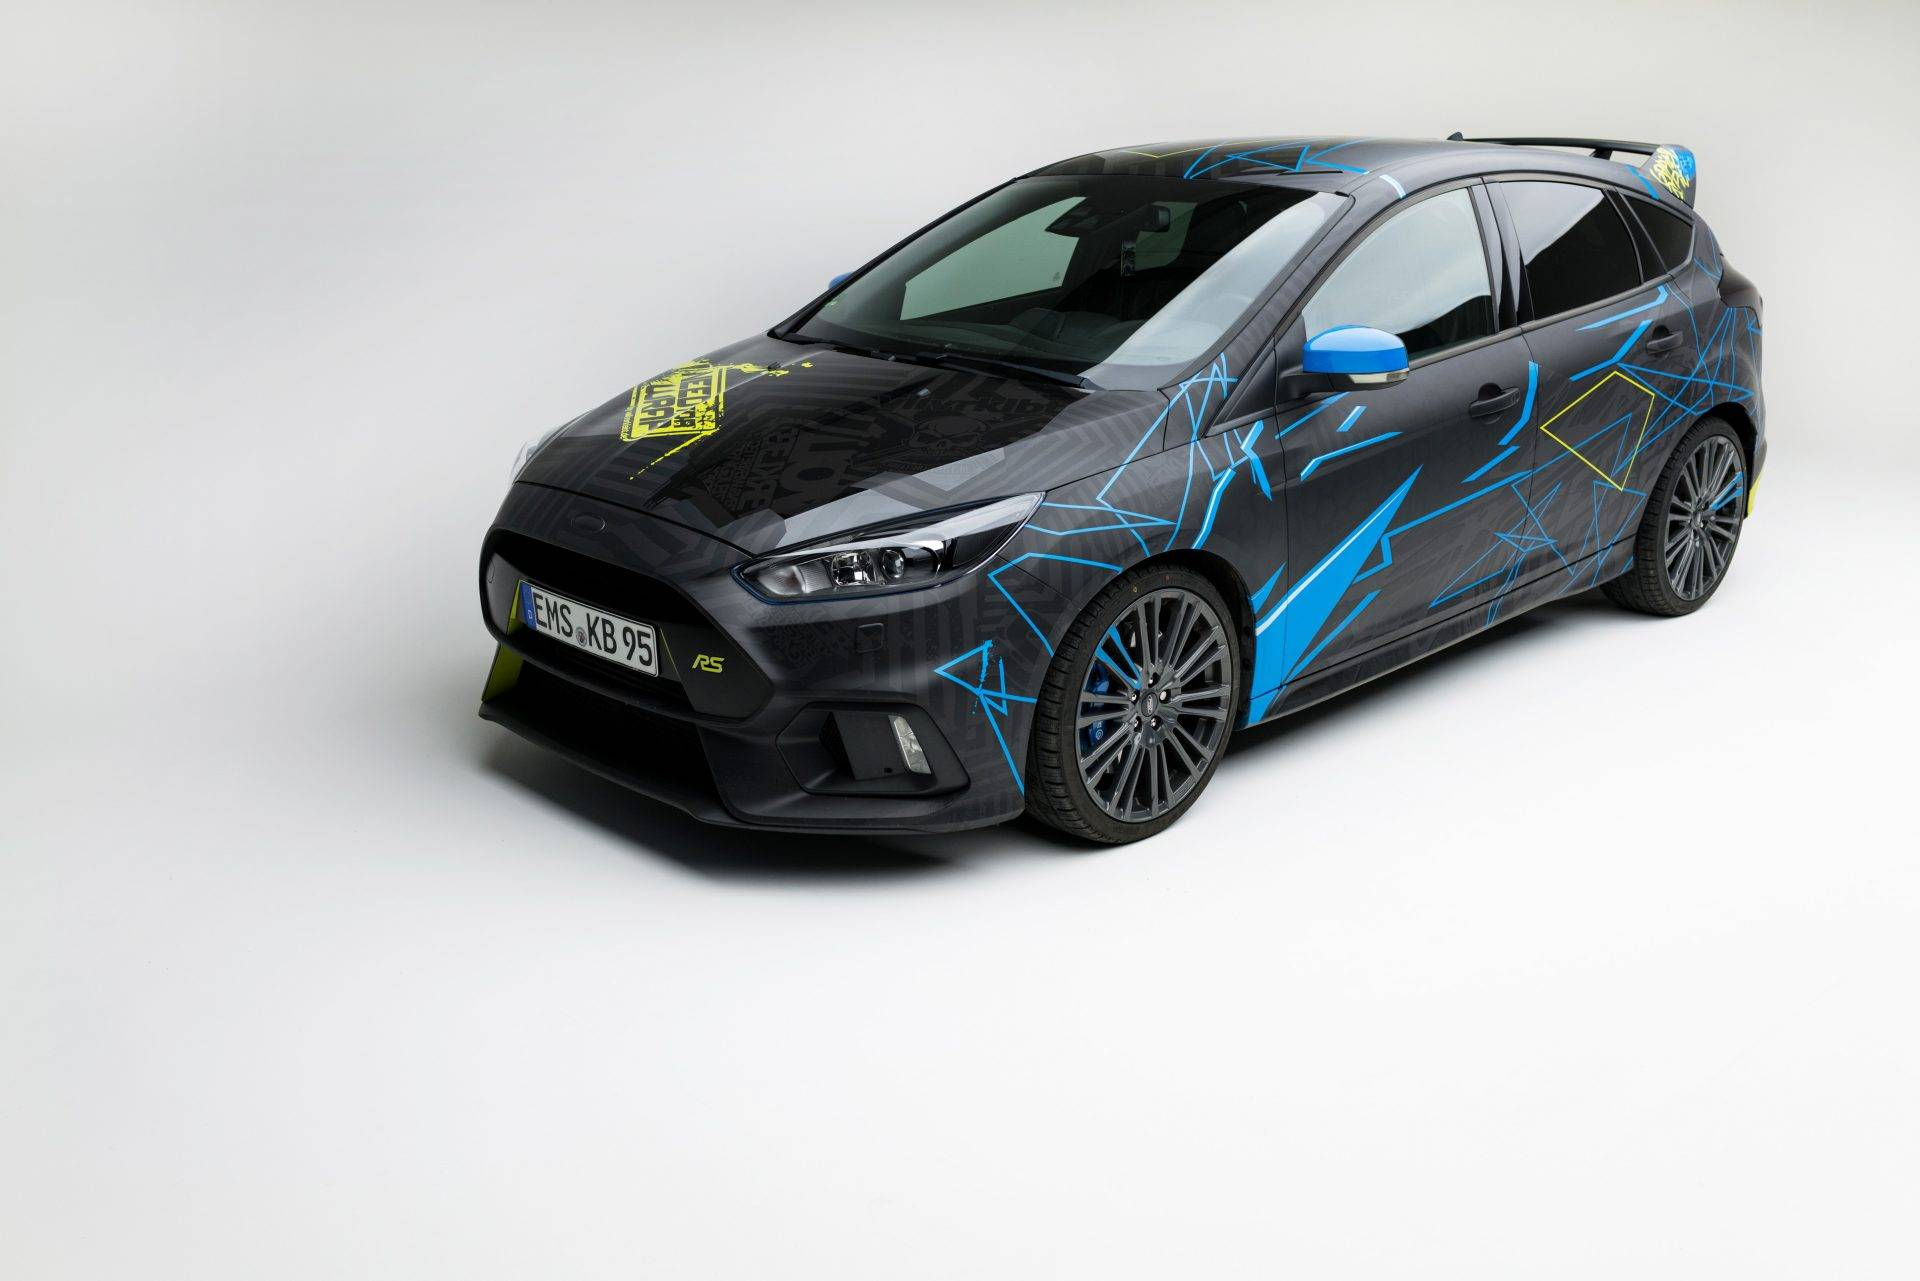 100169_Kai_Ford_Focus_RS_s_1